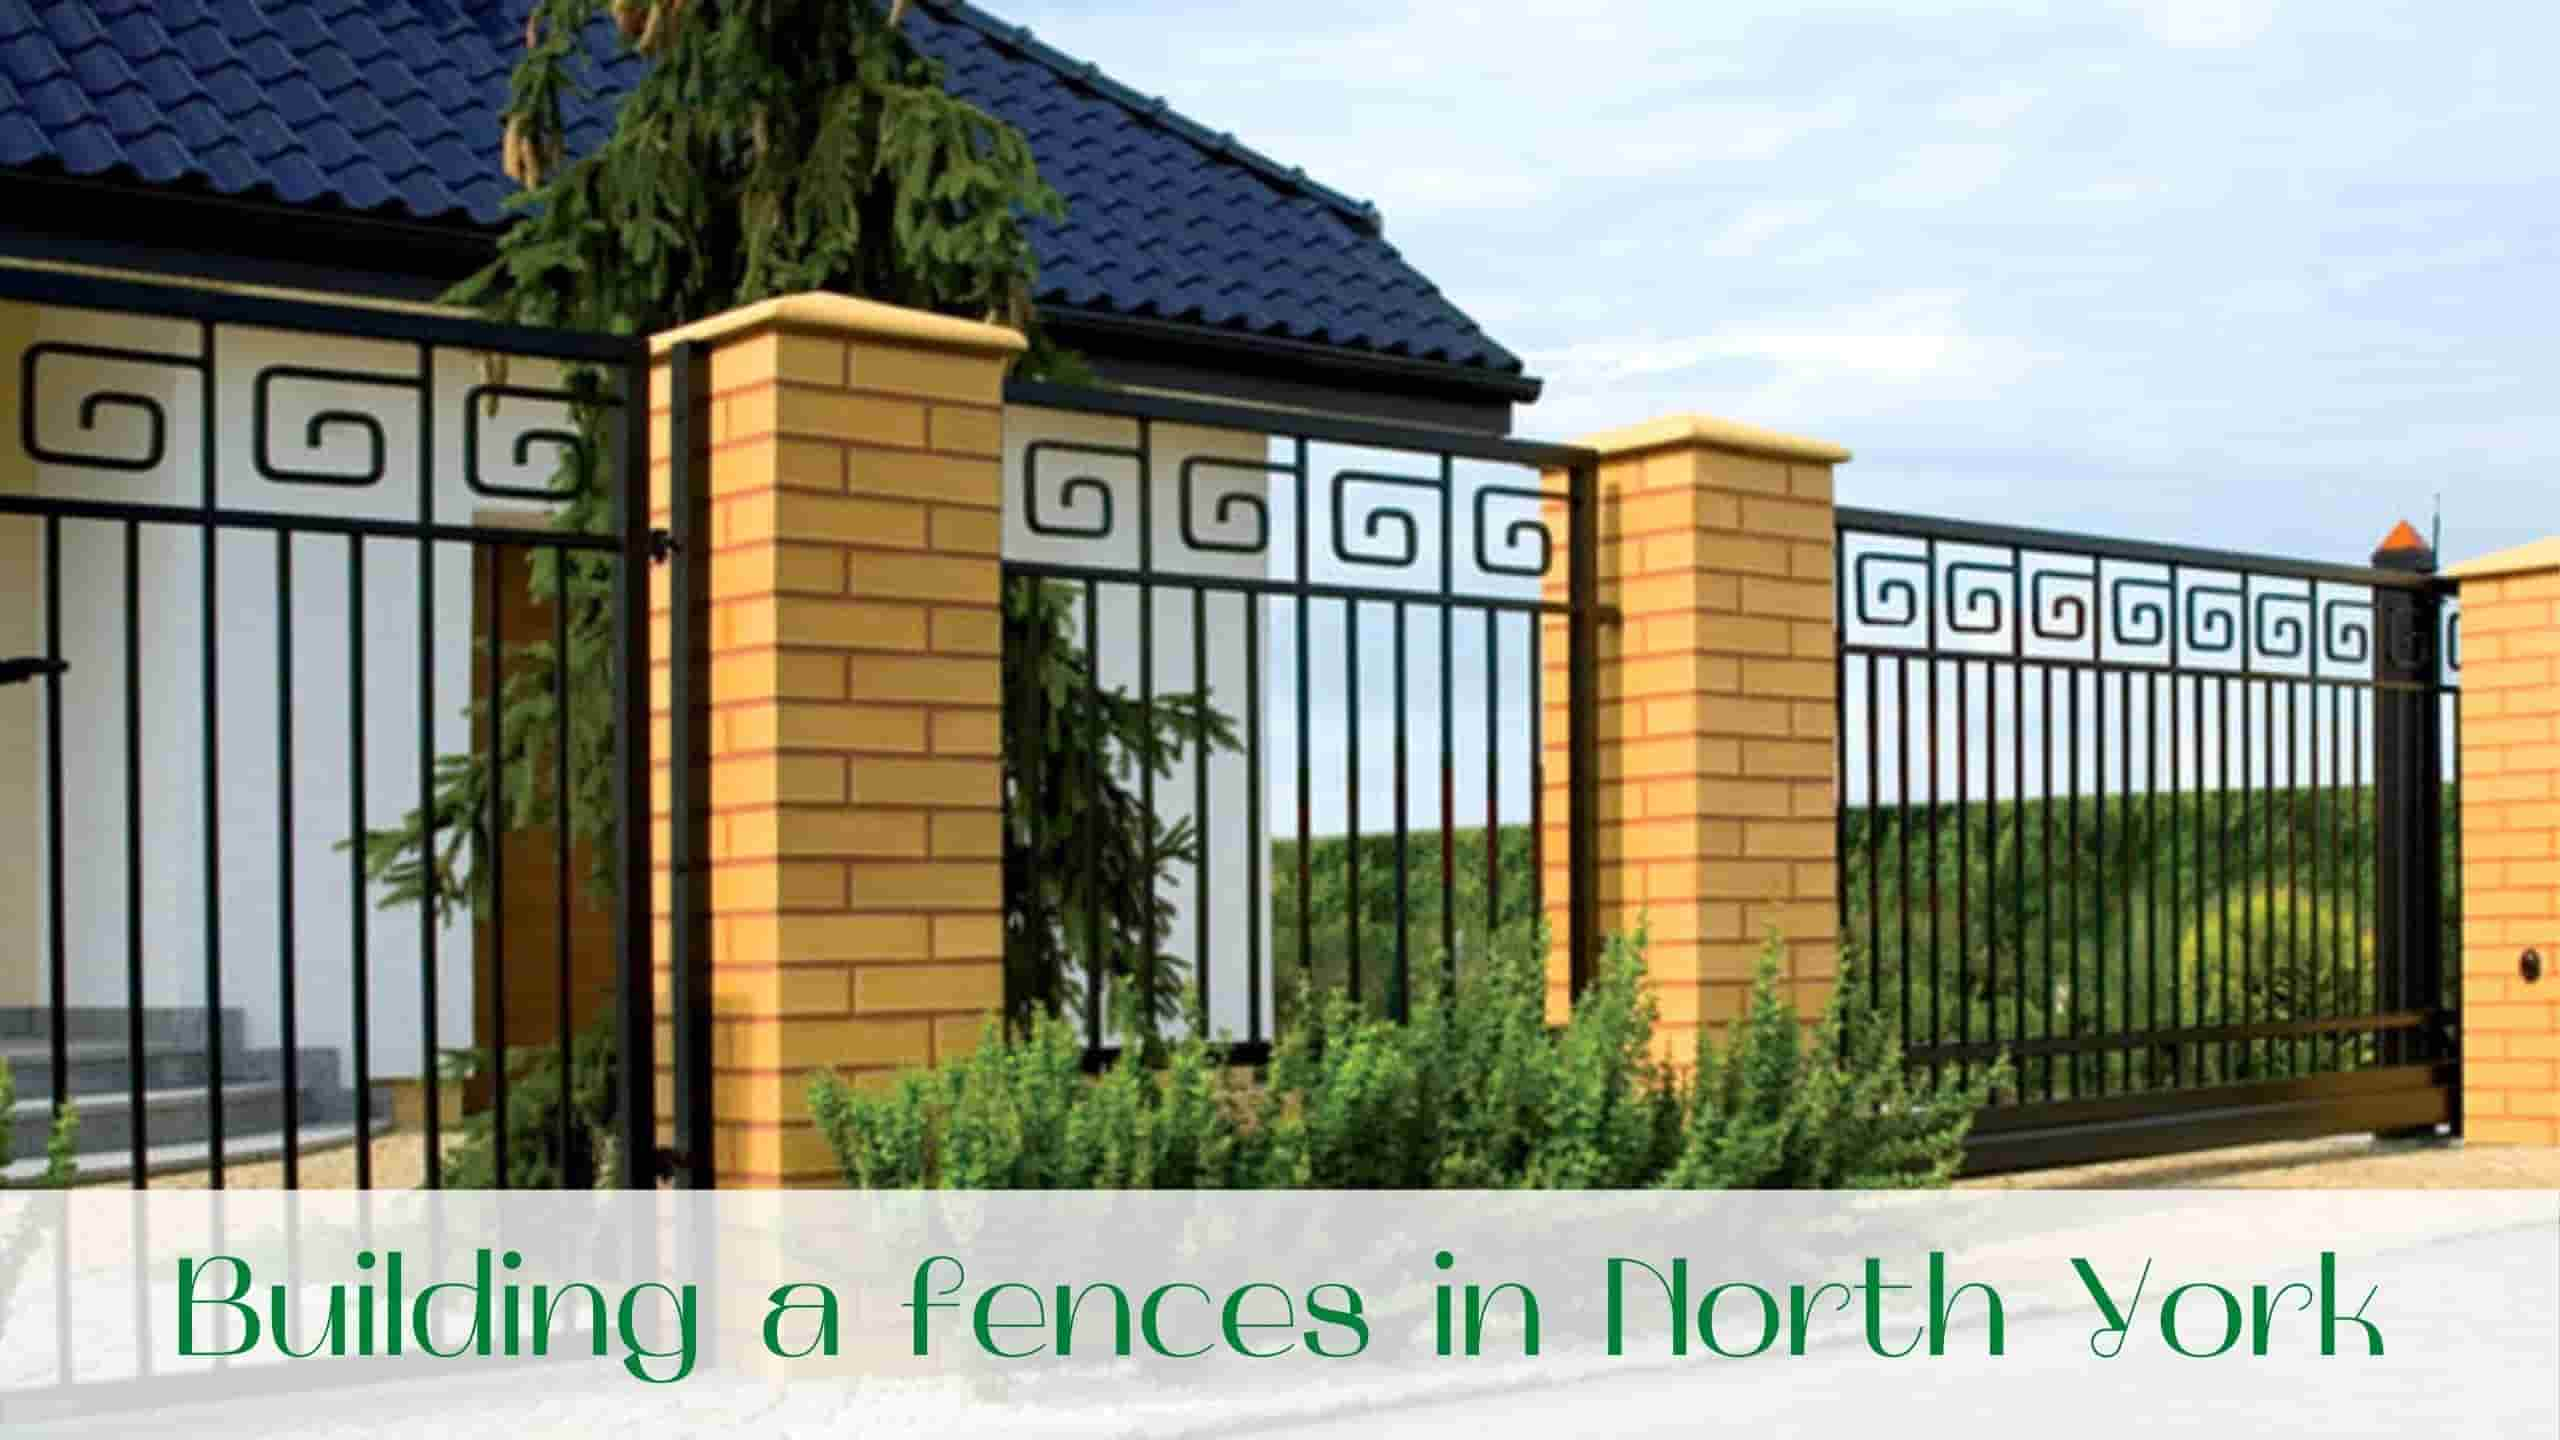 image-Building-a-fences-in-North-York